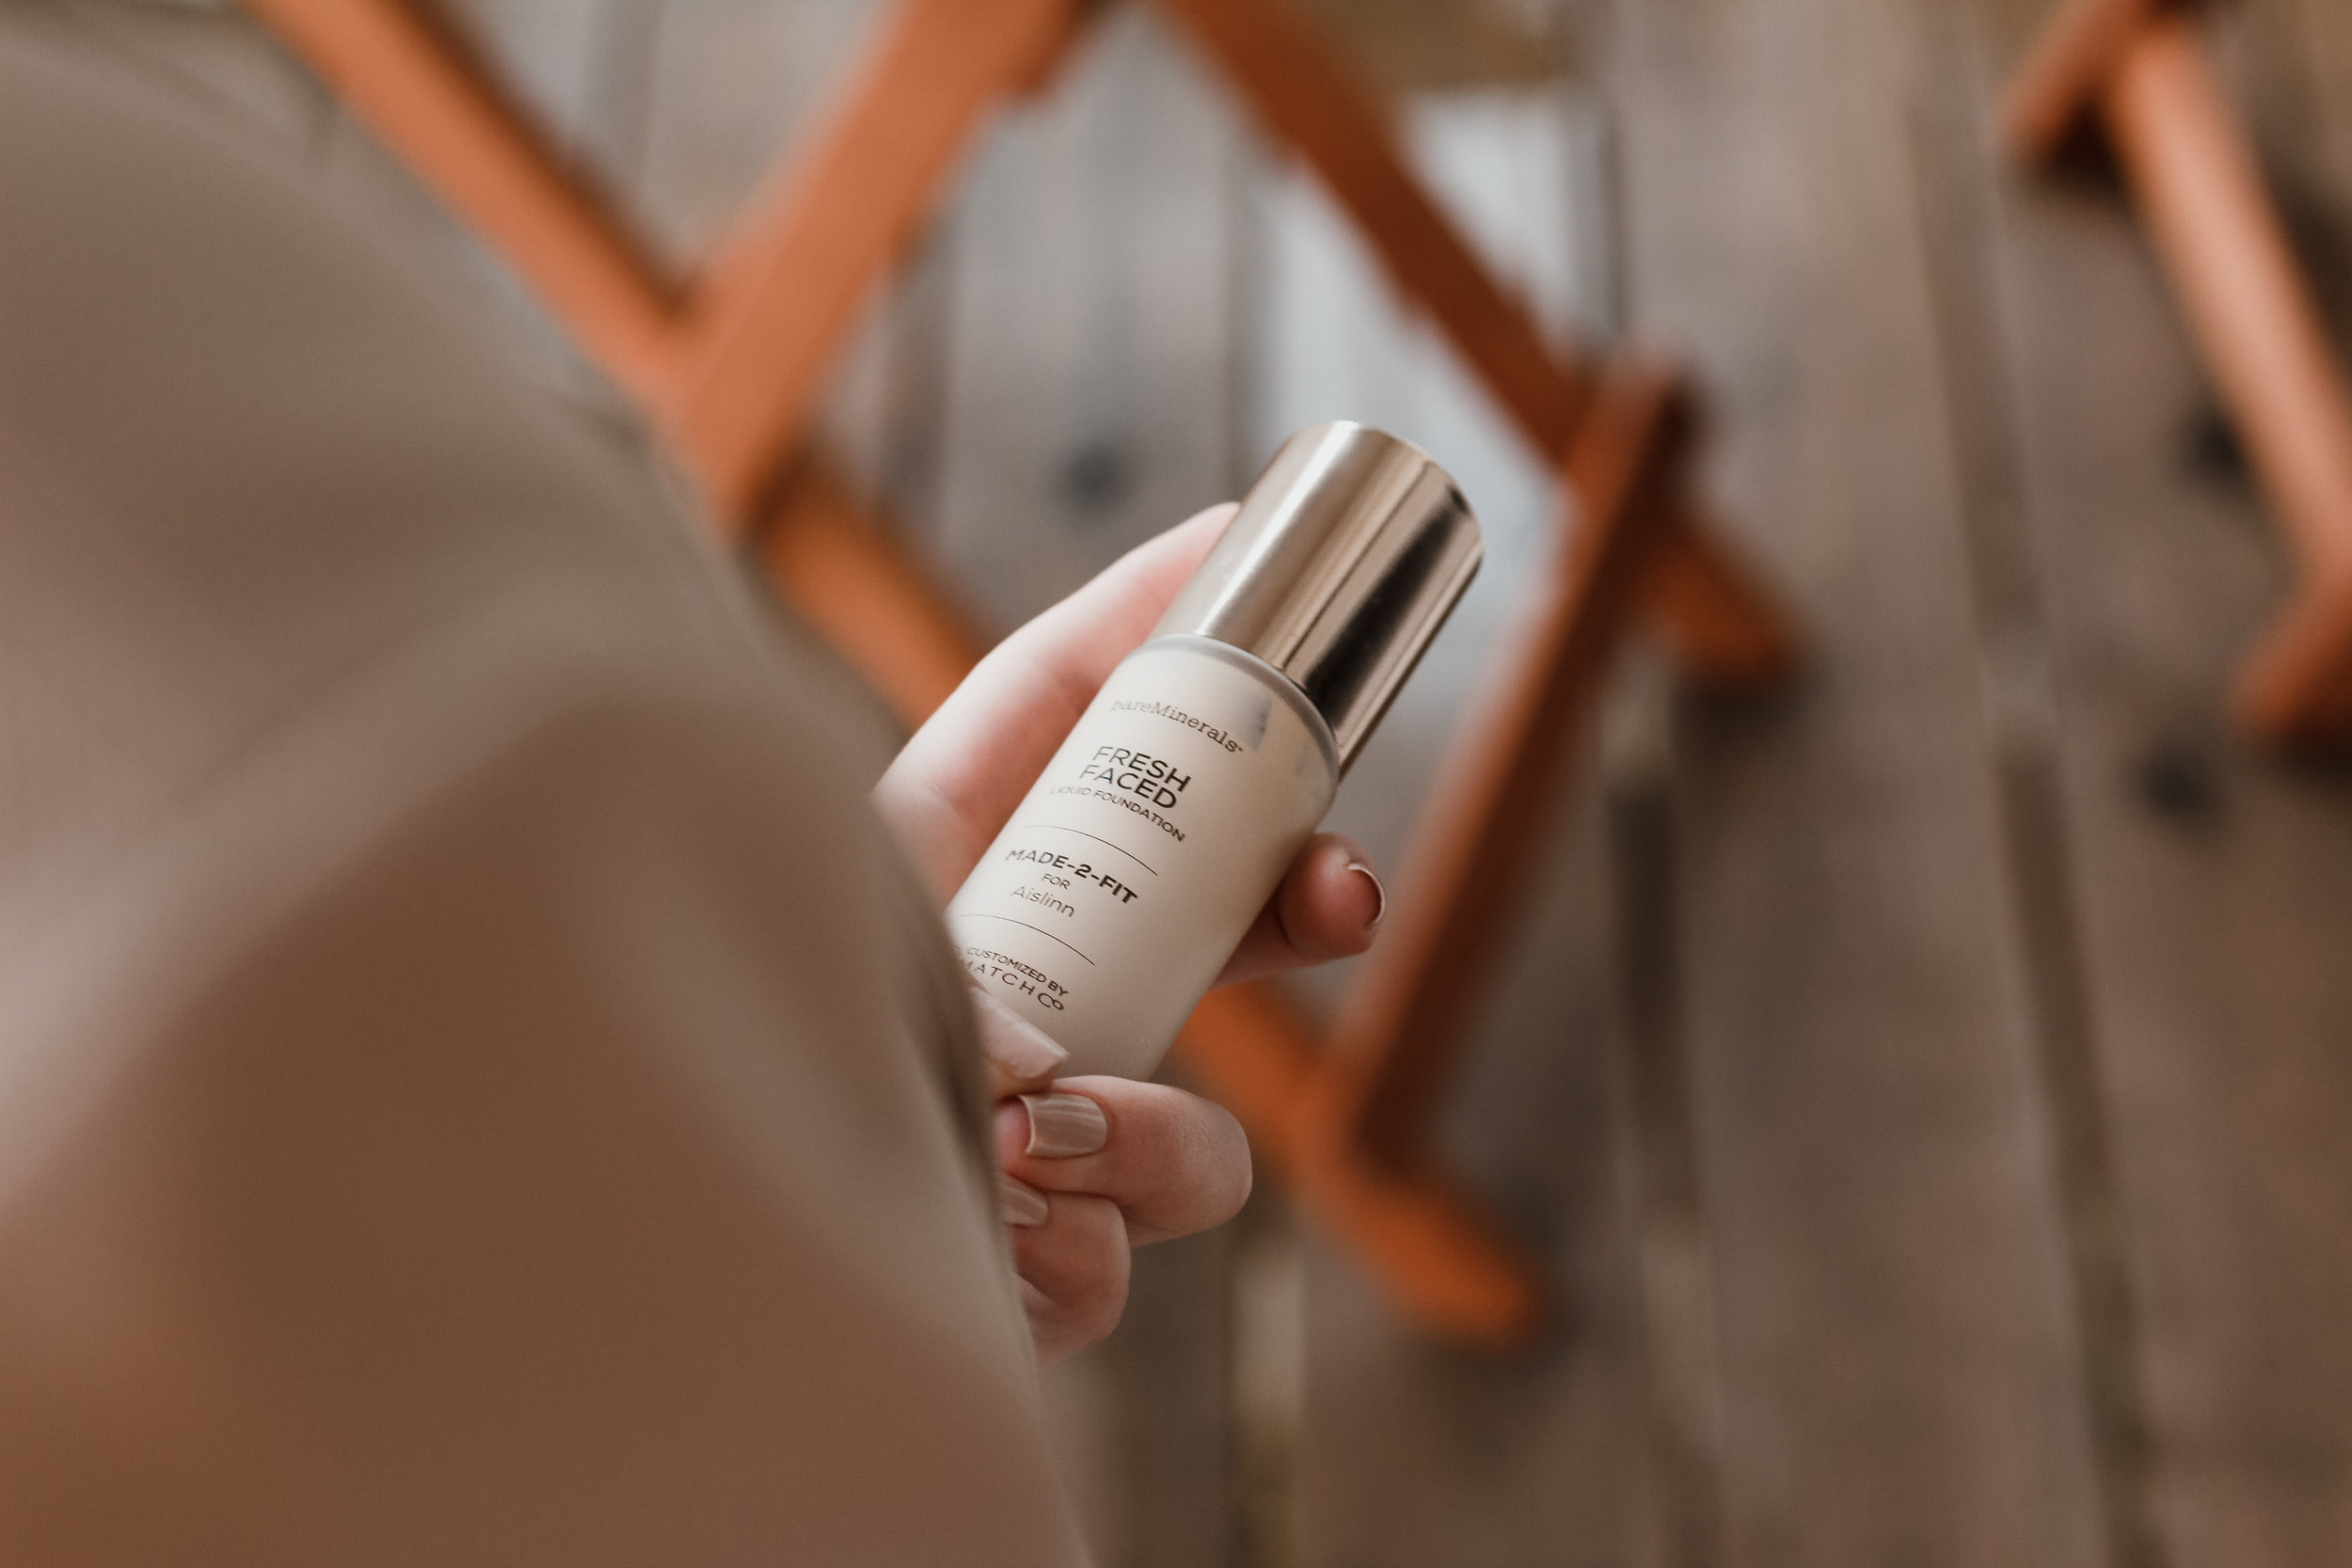 bareMinerals Foundation | The Simplistic Chic